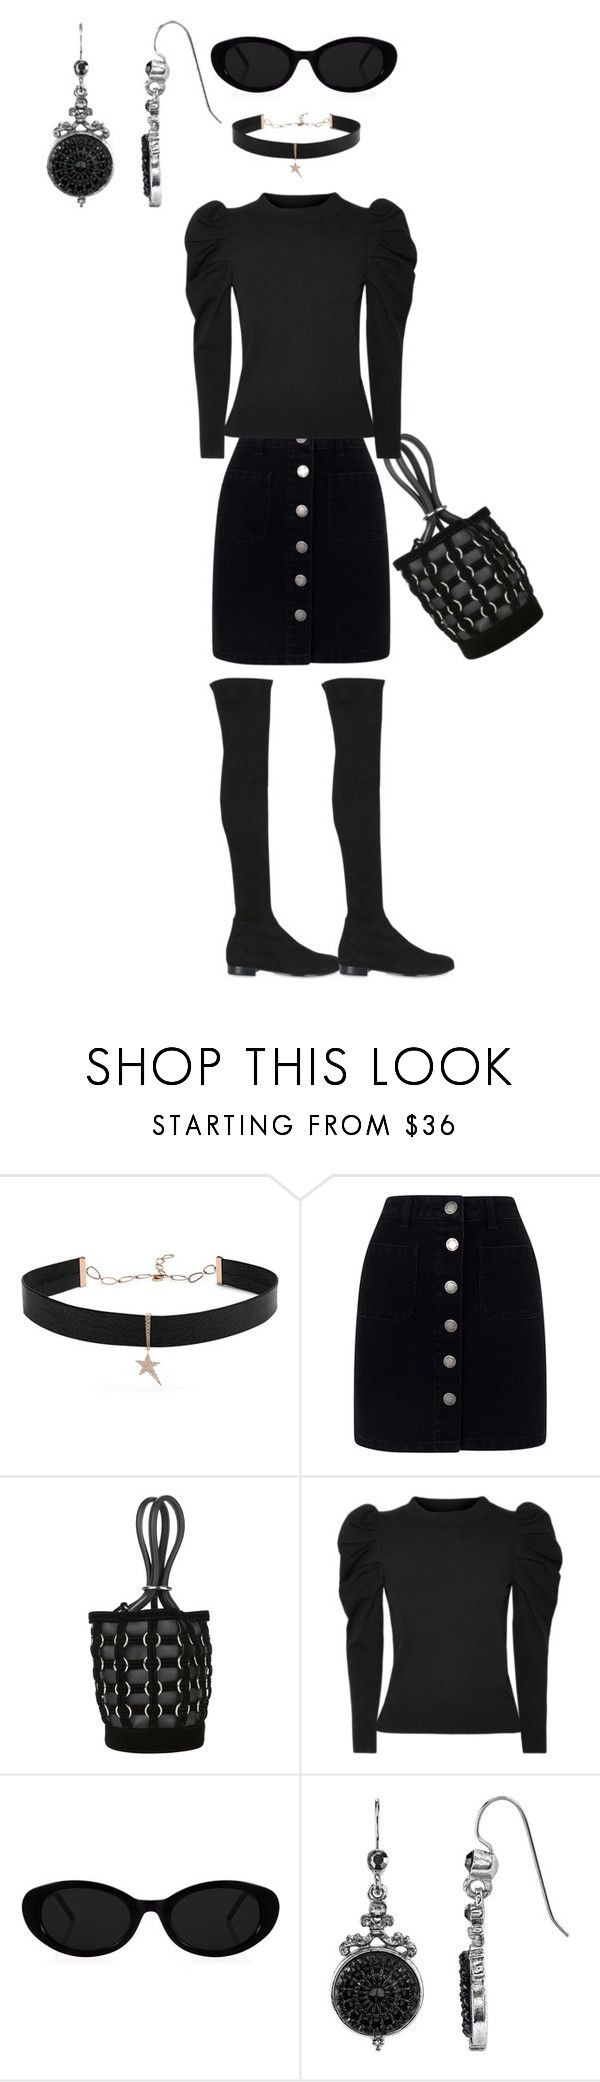 """BLACK IS THE OLD AND NEW BLACK"" by michelle858 ❤ liked on Polyvore featuring Diane Kordas, Miss Selfridge, Alexander Wang, CO and Jimmy Choo"